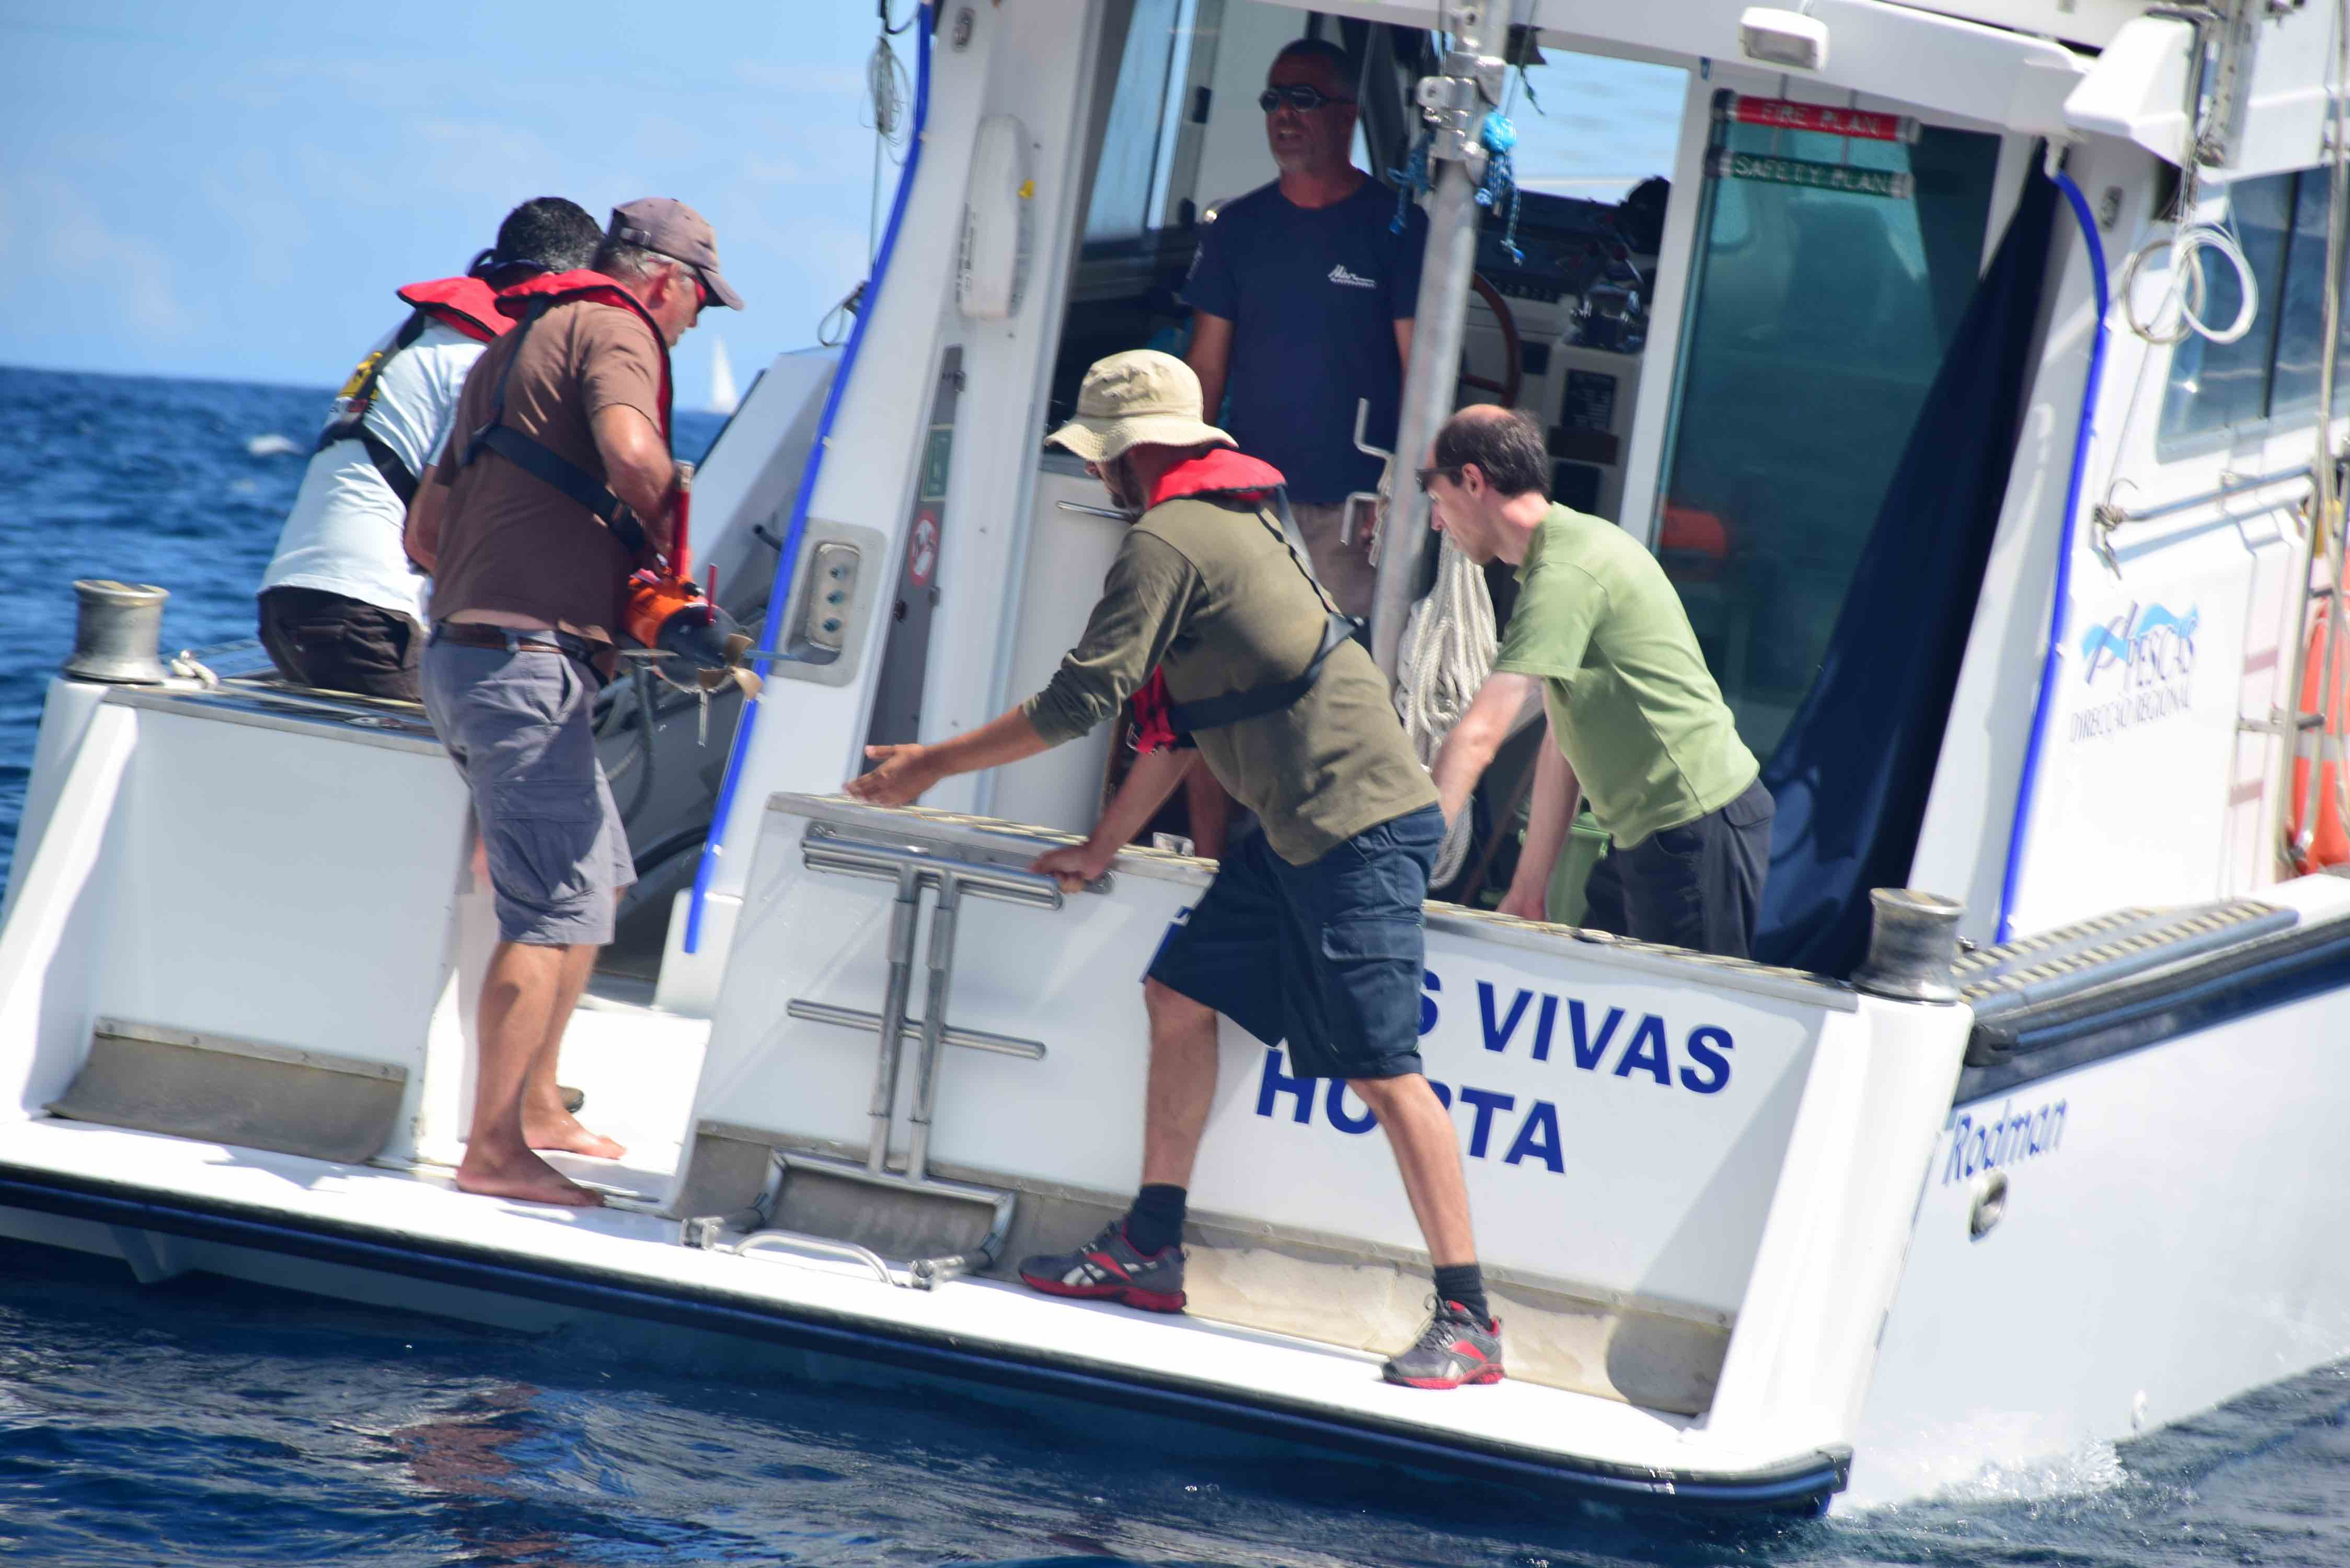 Start of mission on the DOP vessel Águas Vivas with João Pereira and Paulo Dias from FEUP off the southern coast of Pico and aided by DOP personnel.